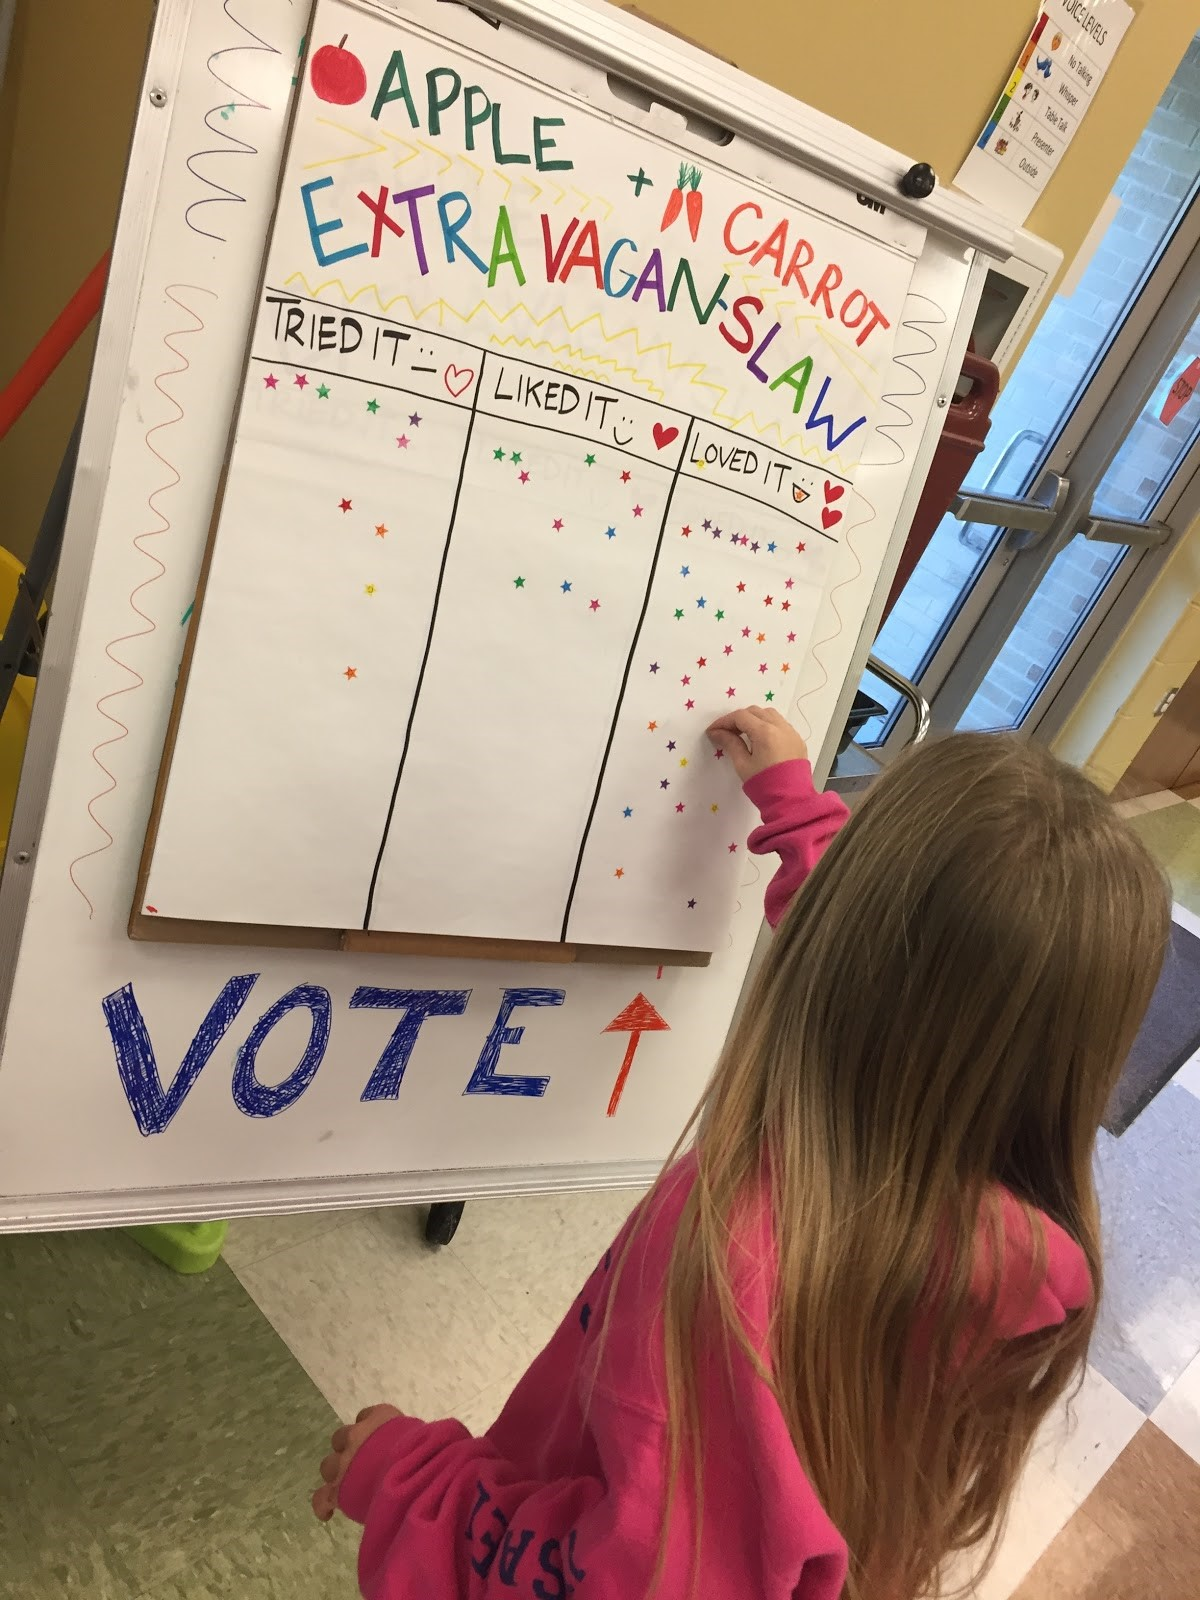 Student voting on how she liked the apple carrot extraagan-slaw taste test